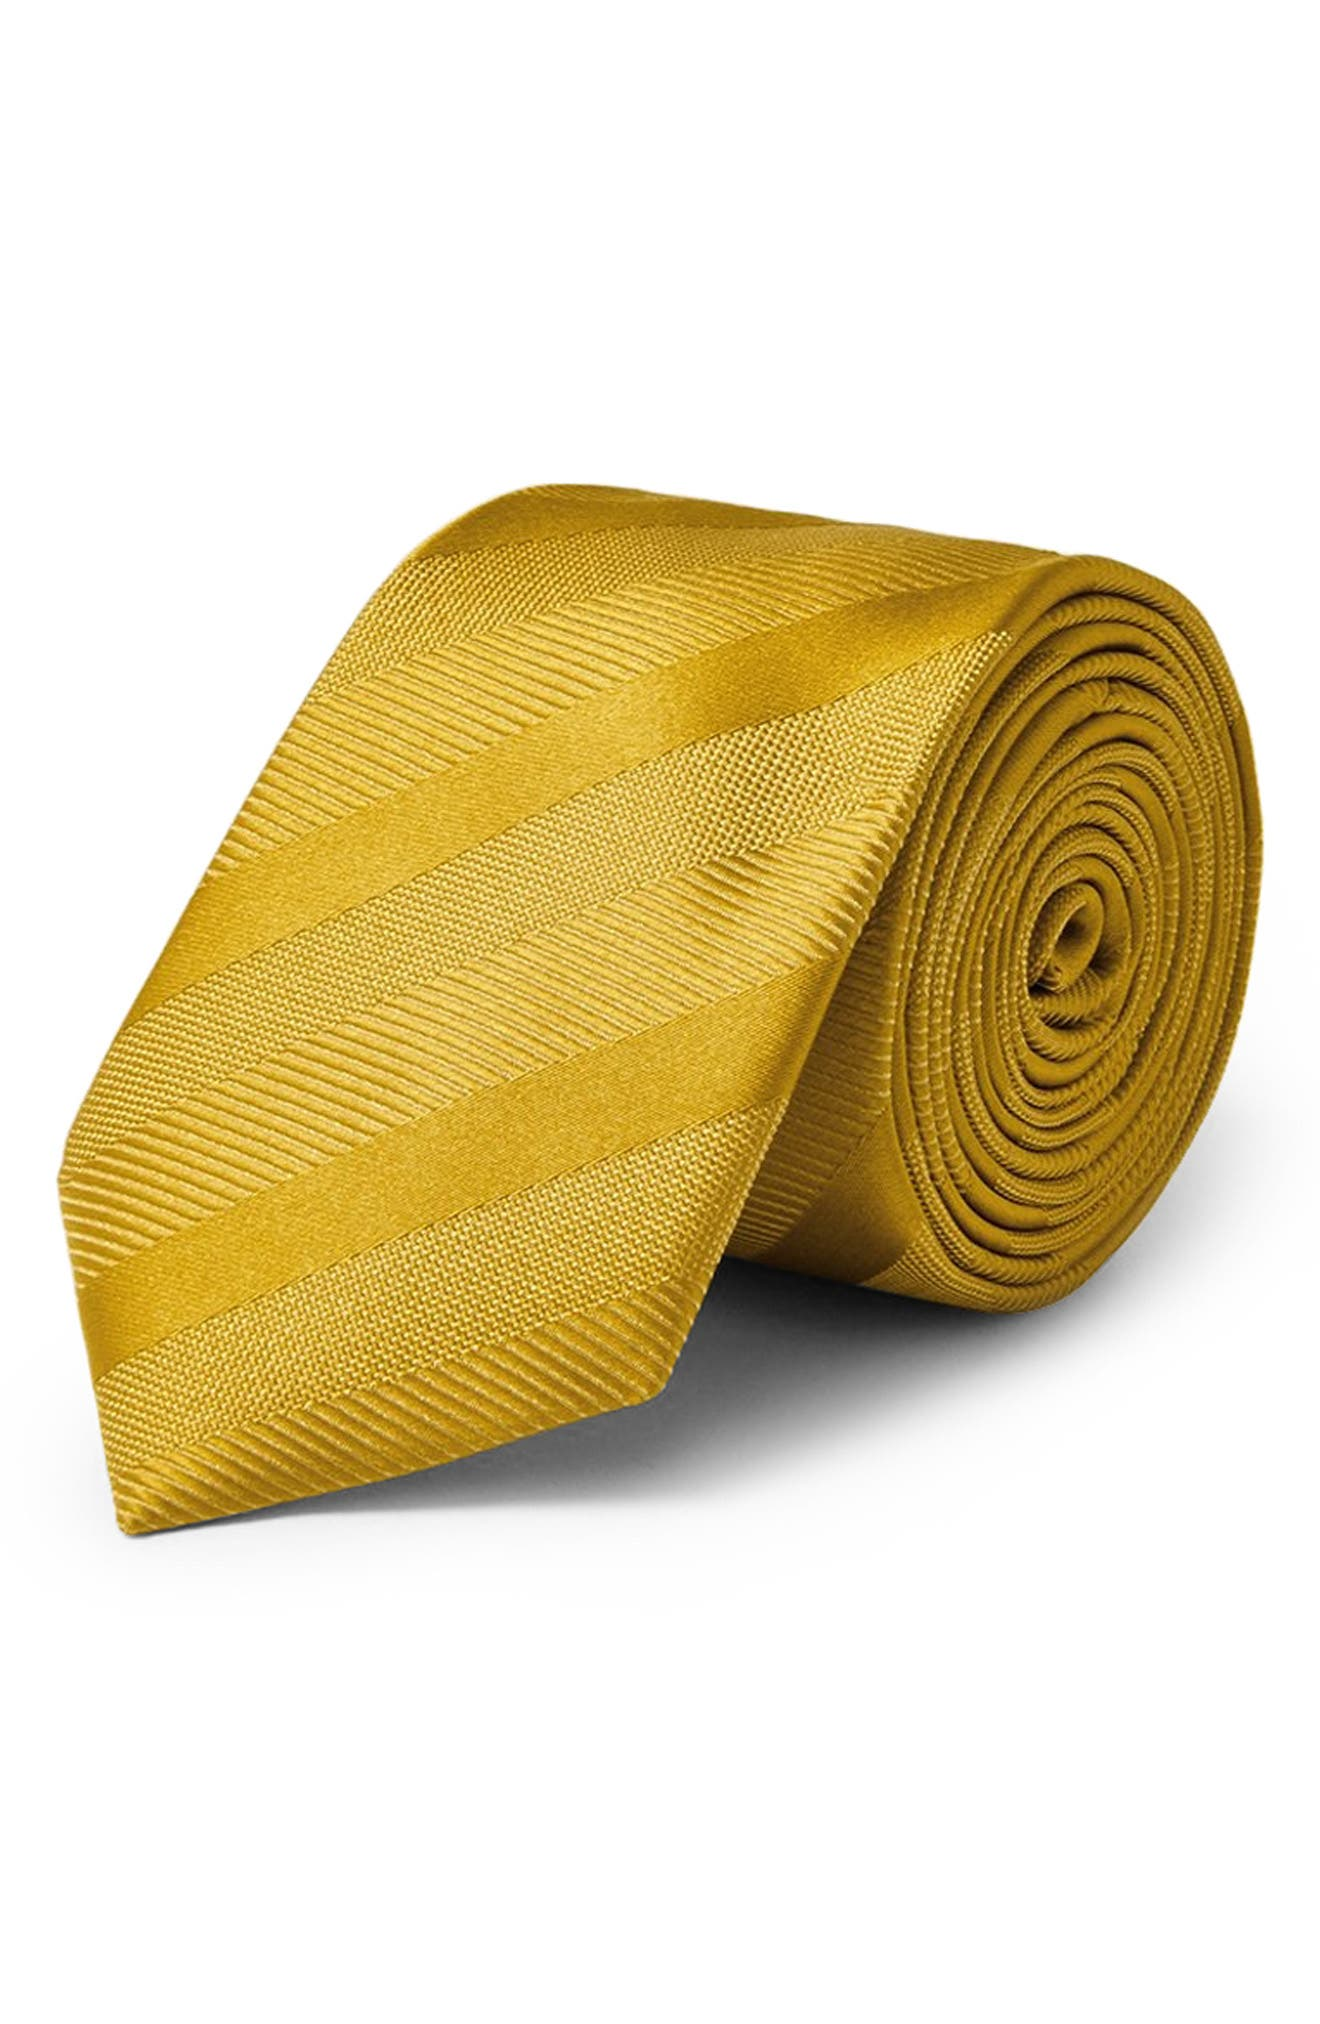 Stripe Jacquard Tie,                             Main thumbnail 1, color,                             710